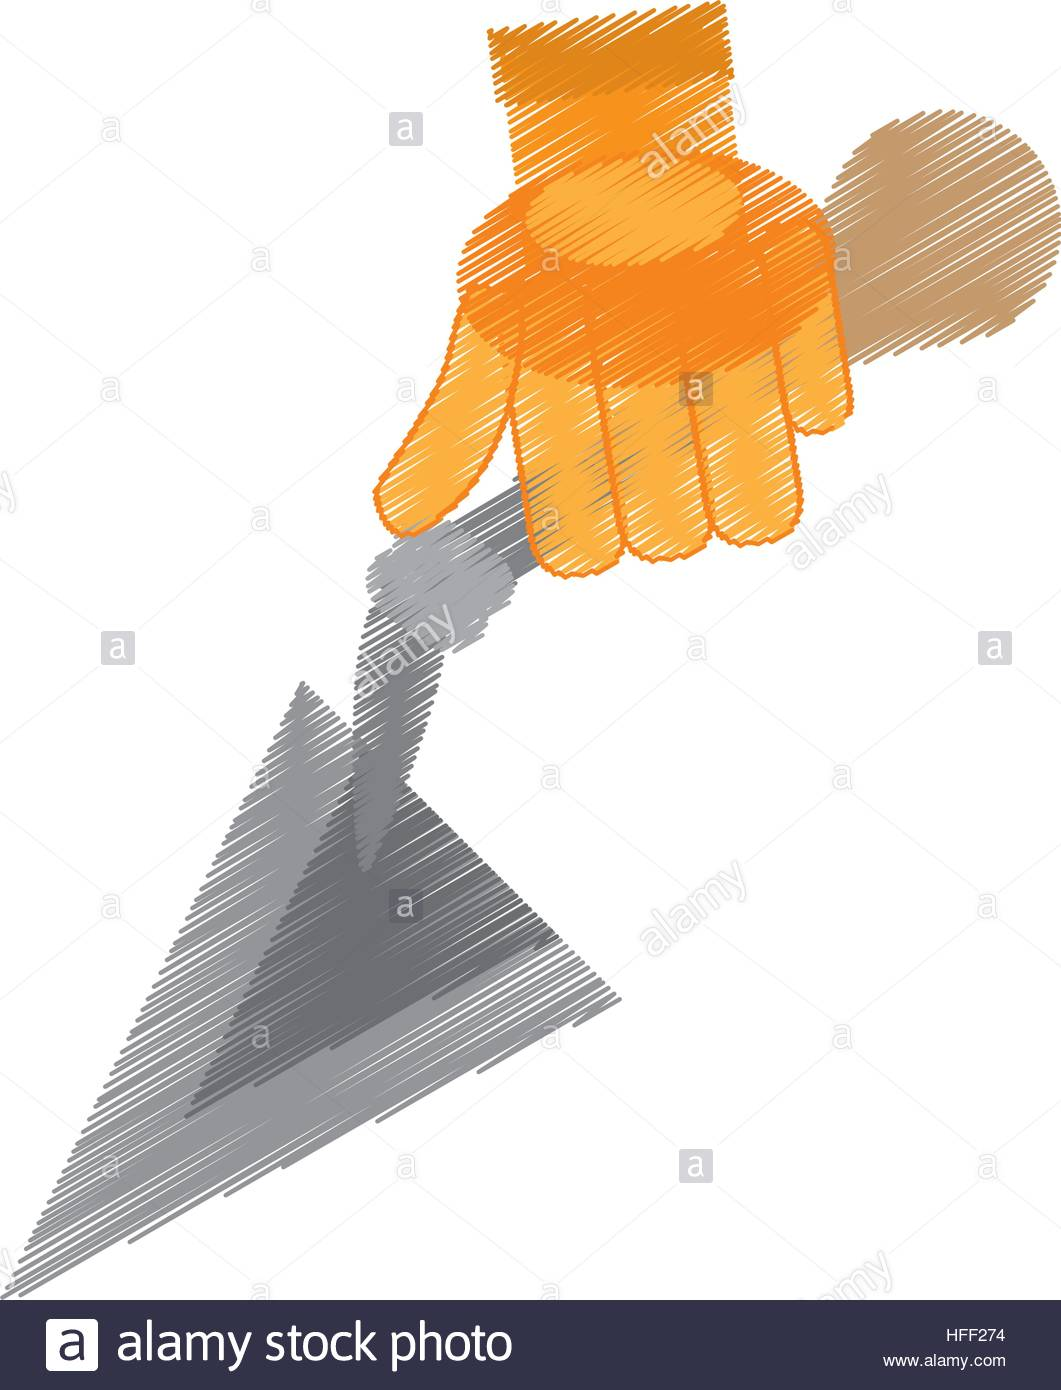 1061x1390 Drawing Spatula Tool Construction Glove Handle Stock Vector Art